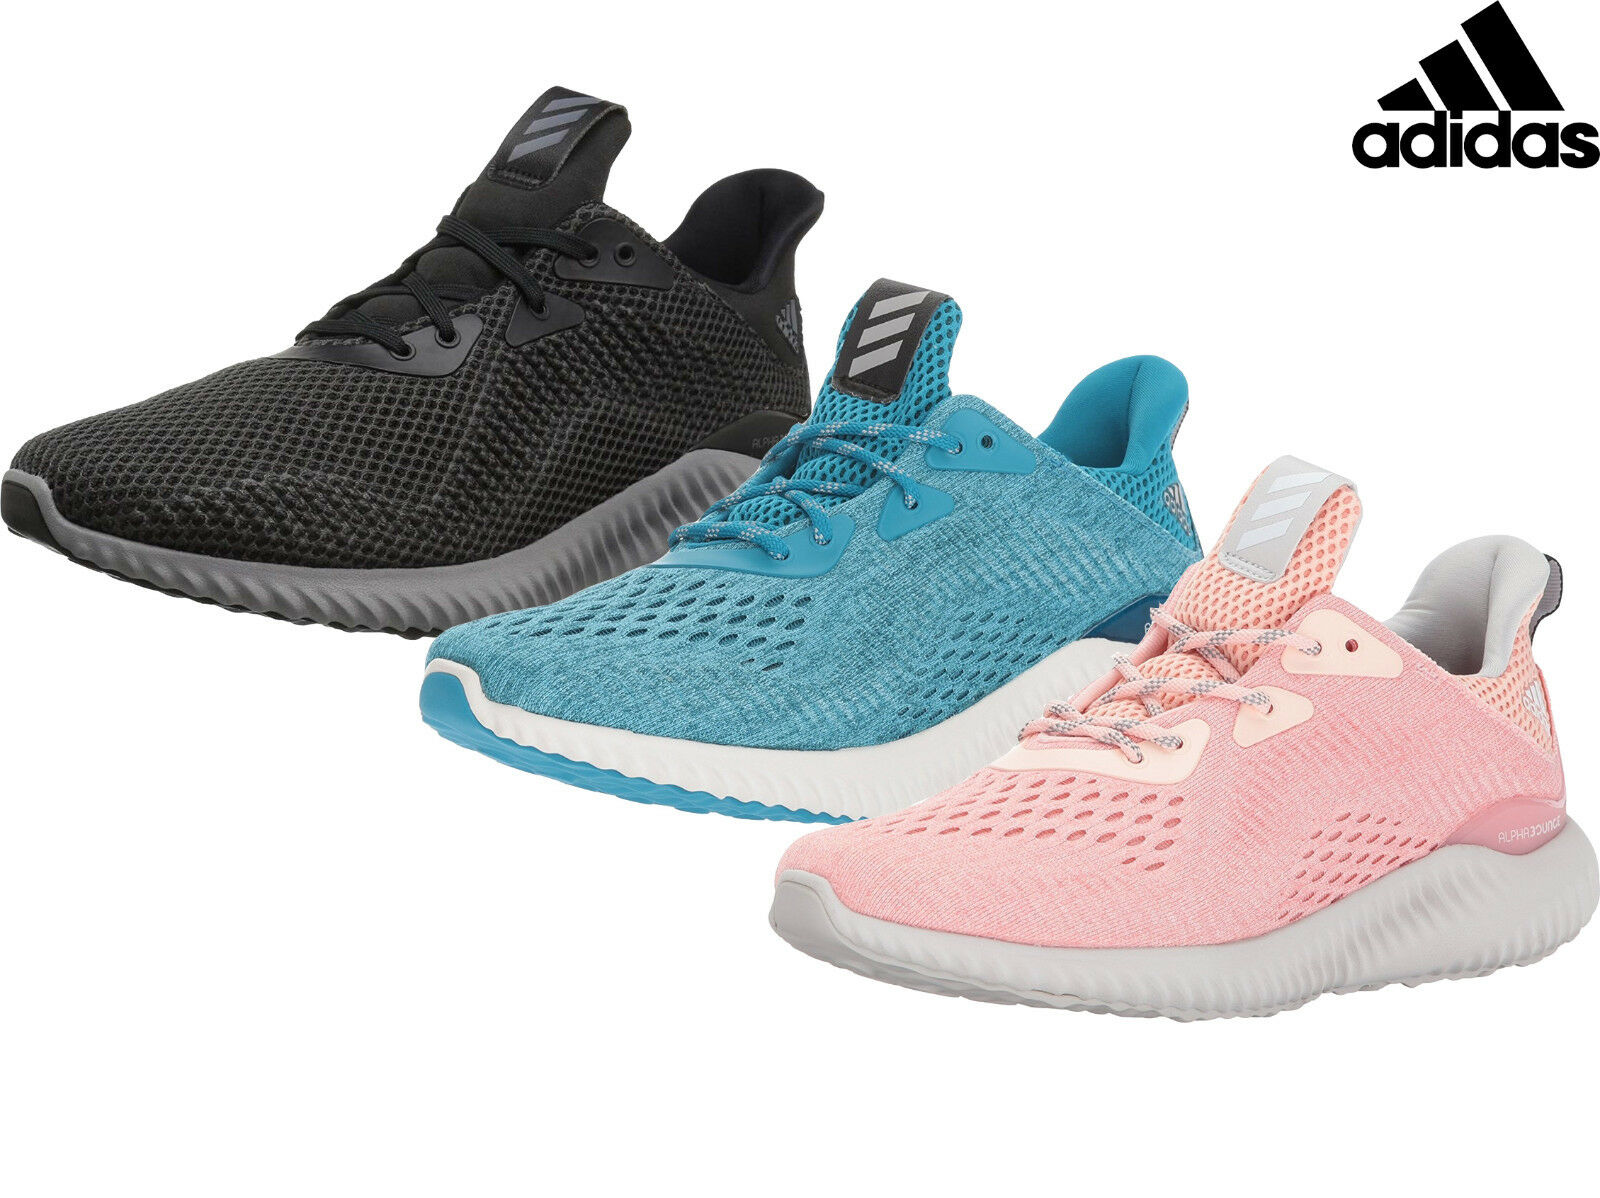 Sneakers Womens Alphabounce Adidas Running New Em Shoes Z1pXTwqx